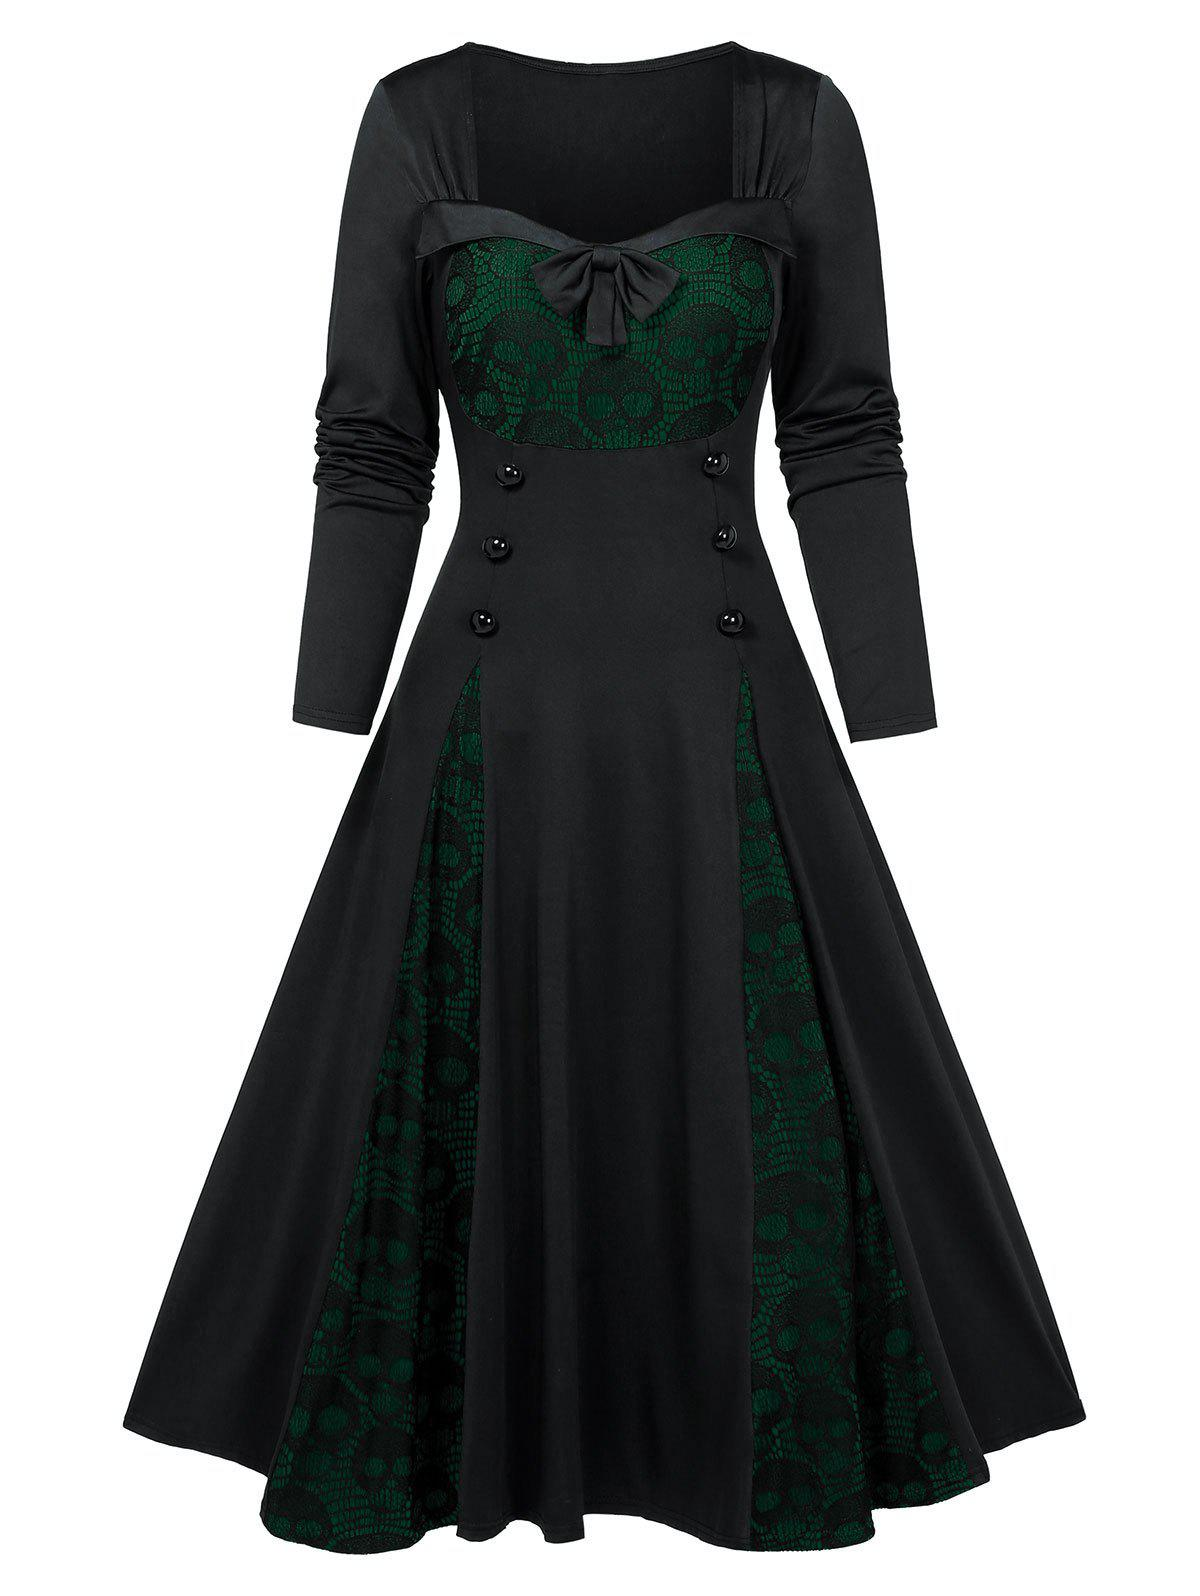 Halloween Skull Lace Insert Mock Button Bowknot Dress - DARK FOREST GREEN S